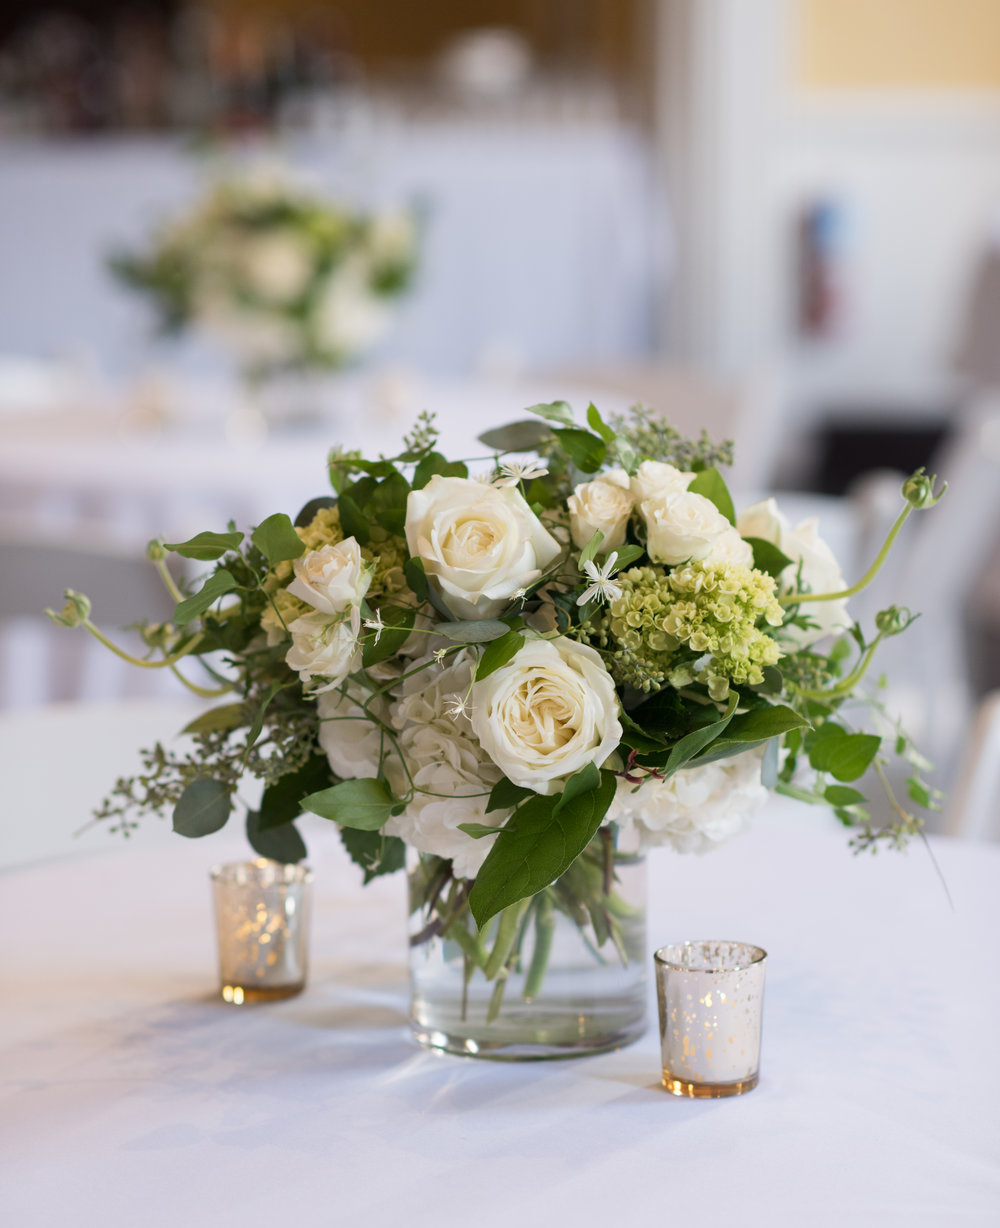 More classic greens and whites for the table arrangements.